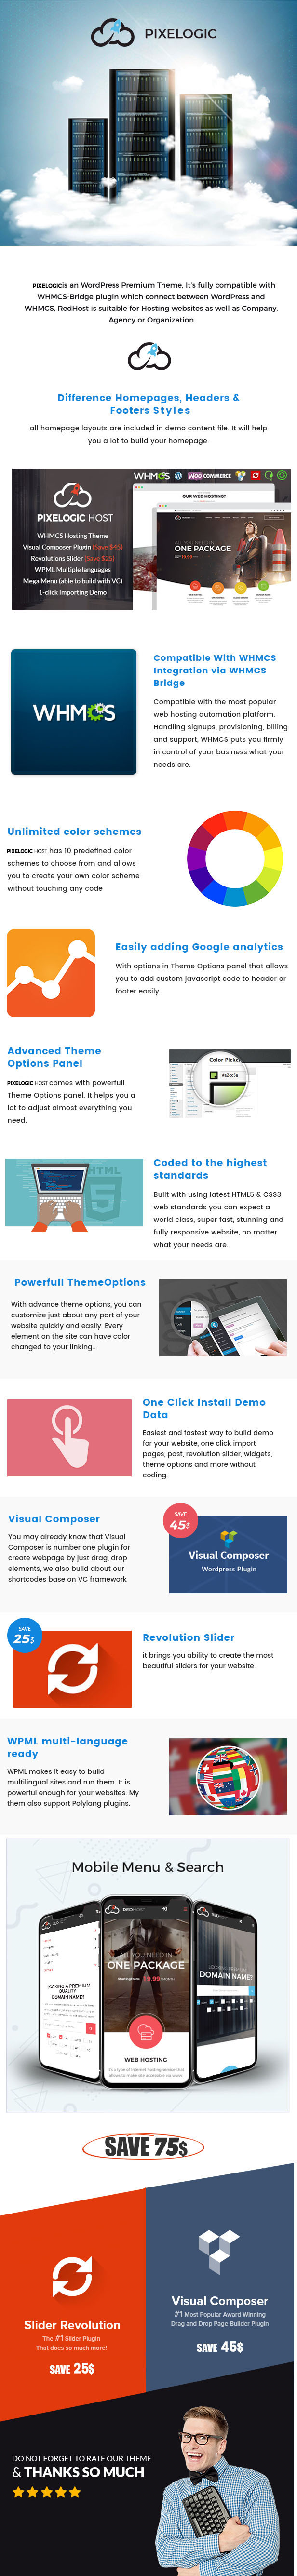 Pixelogic - WHMCS Hosting, Shop & Corporate Theme Free Download